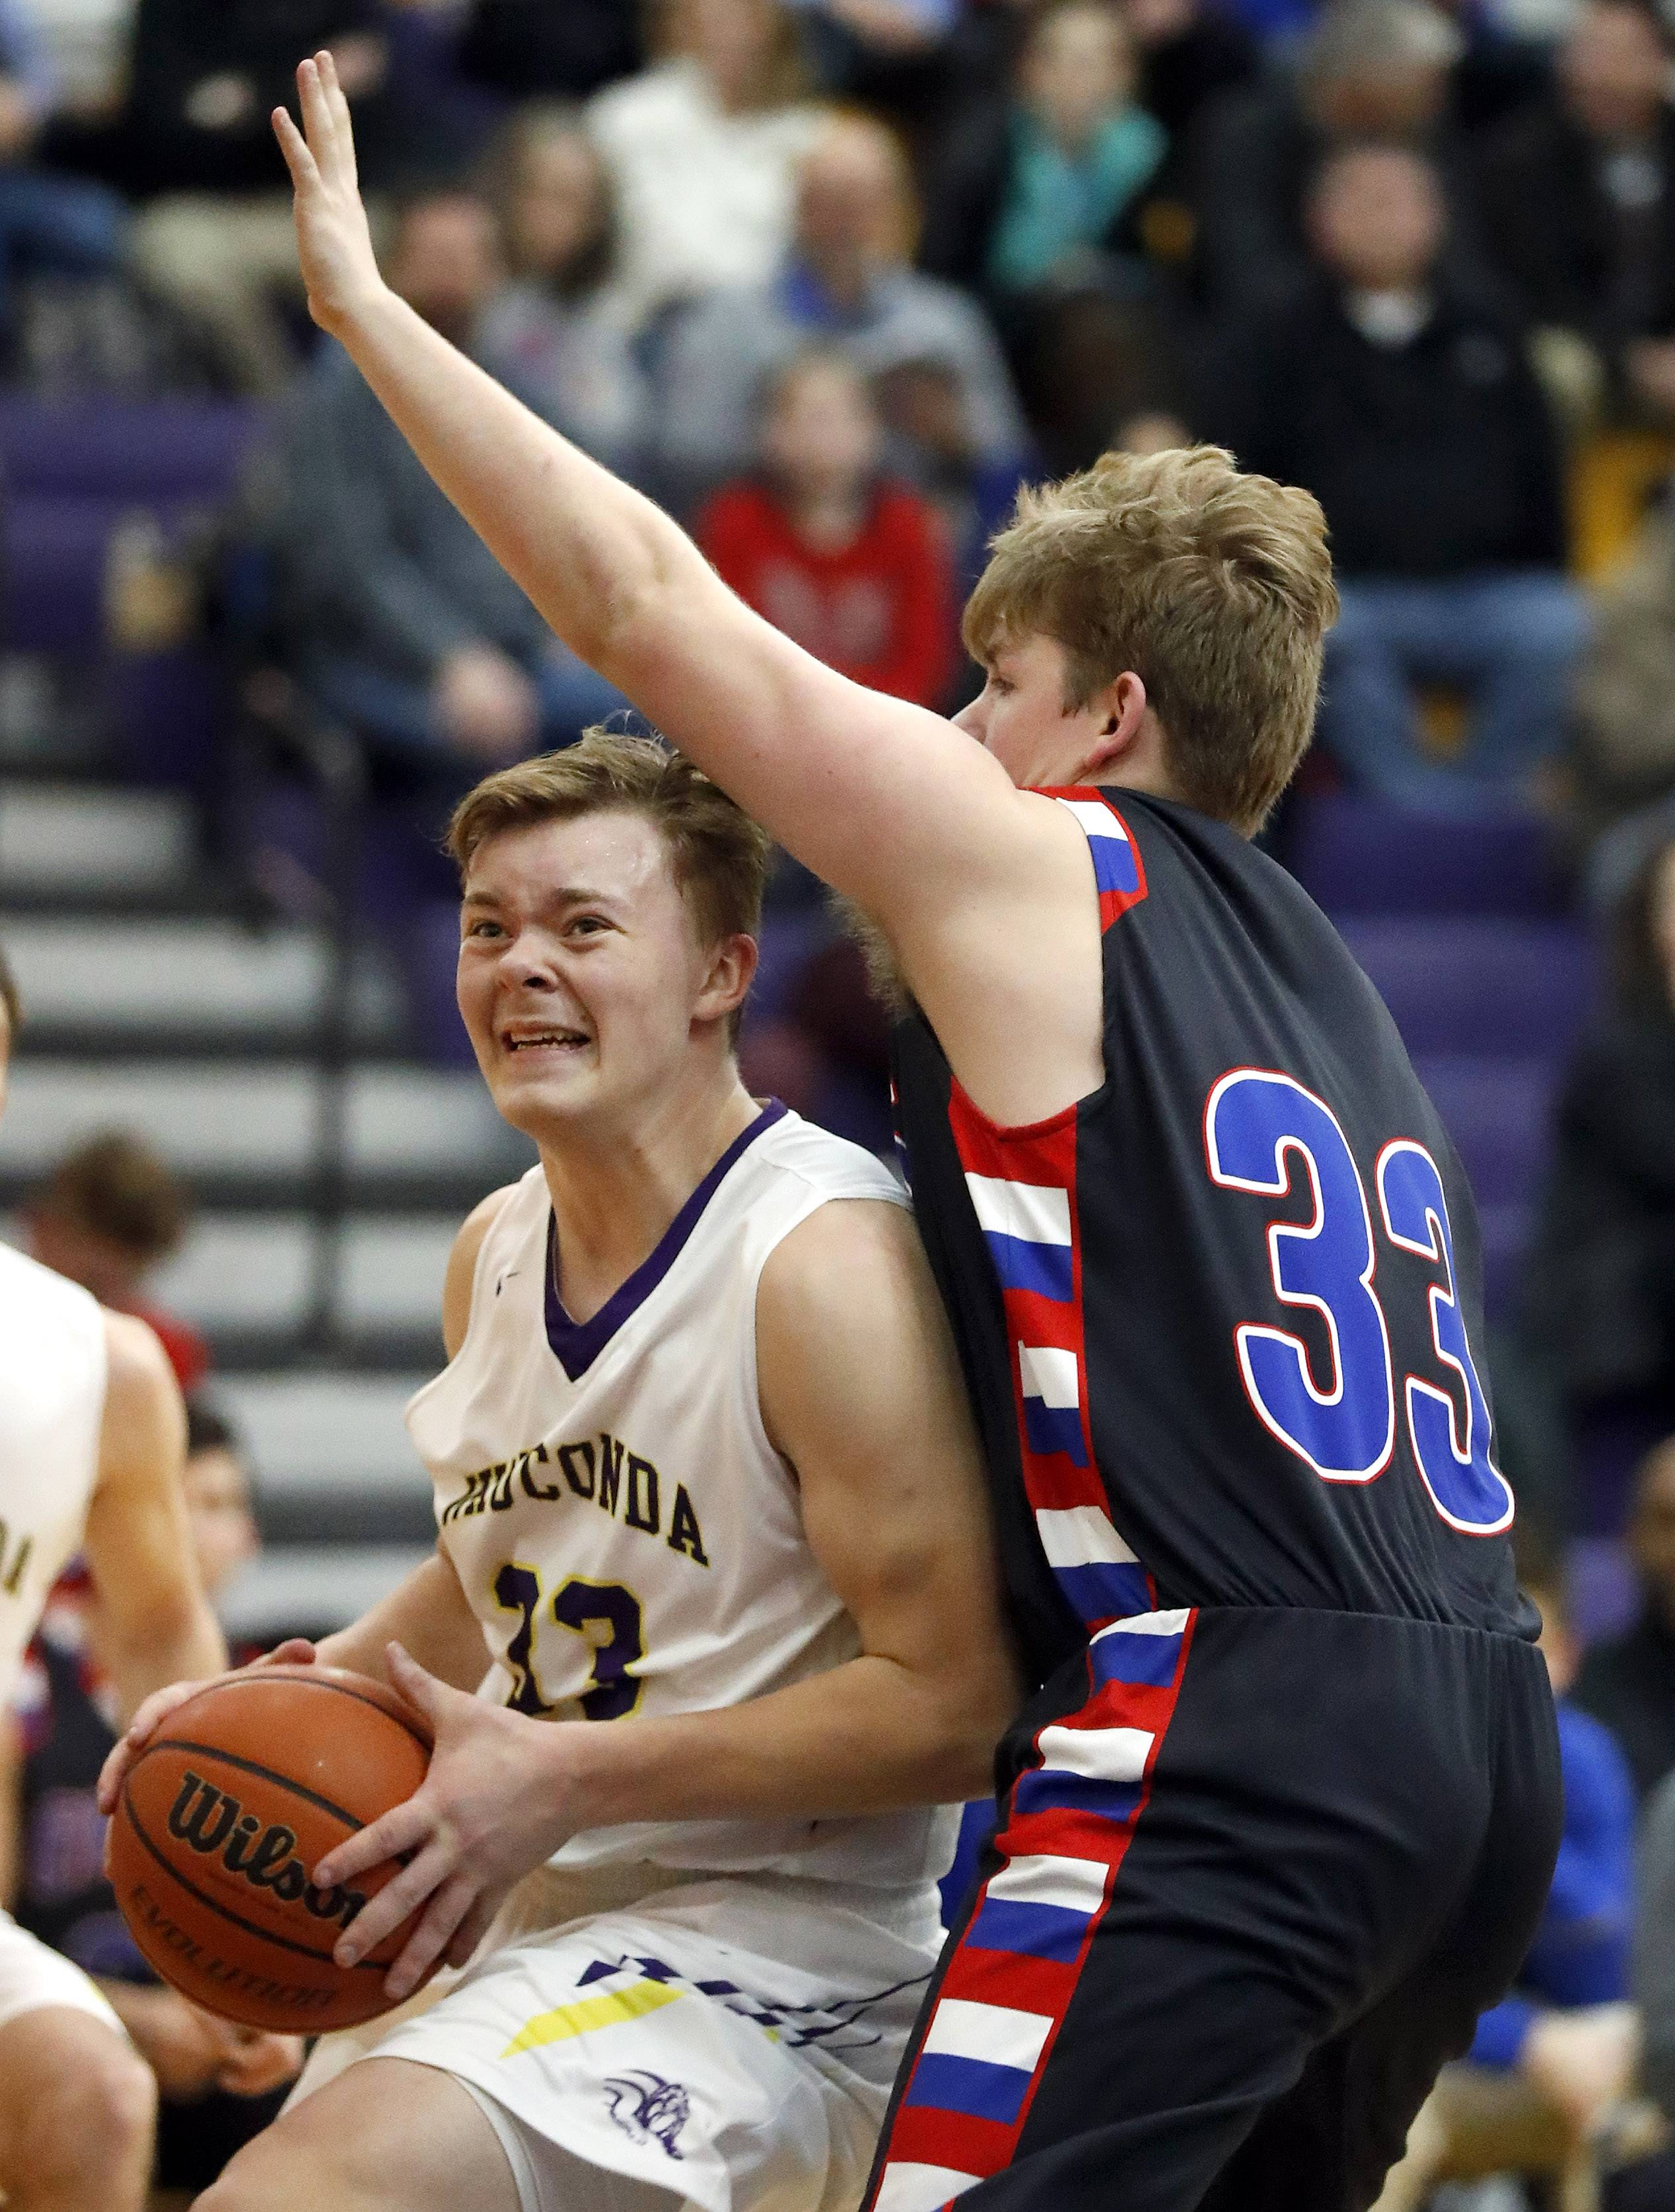 Wauconda's Andrew Nolan, left, drives on Lakes' Tylor Gunther on Tuesday night in Wauconda.